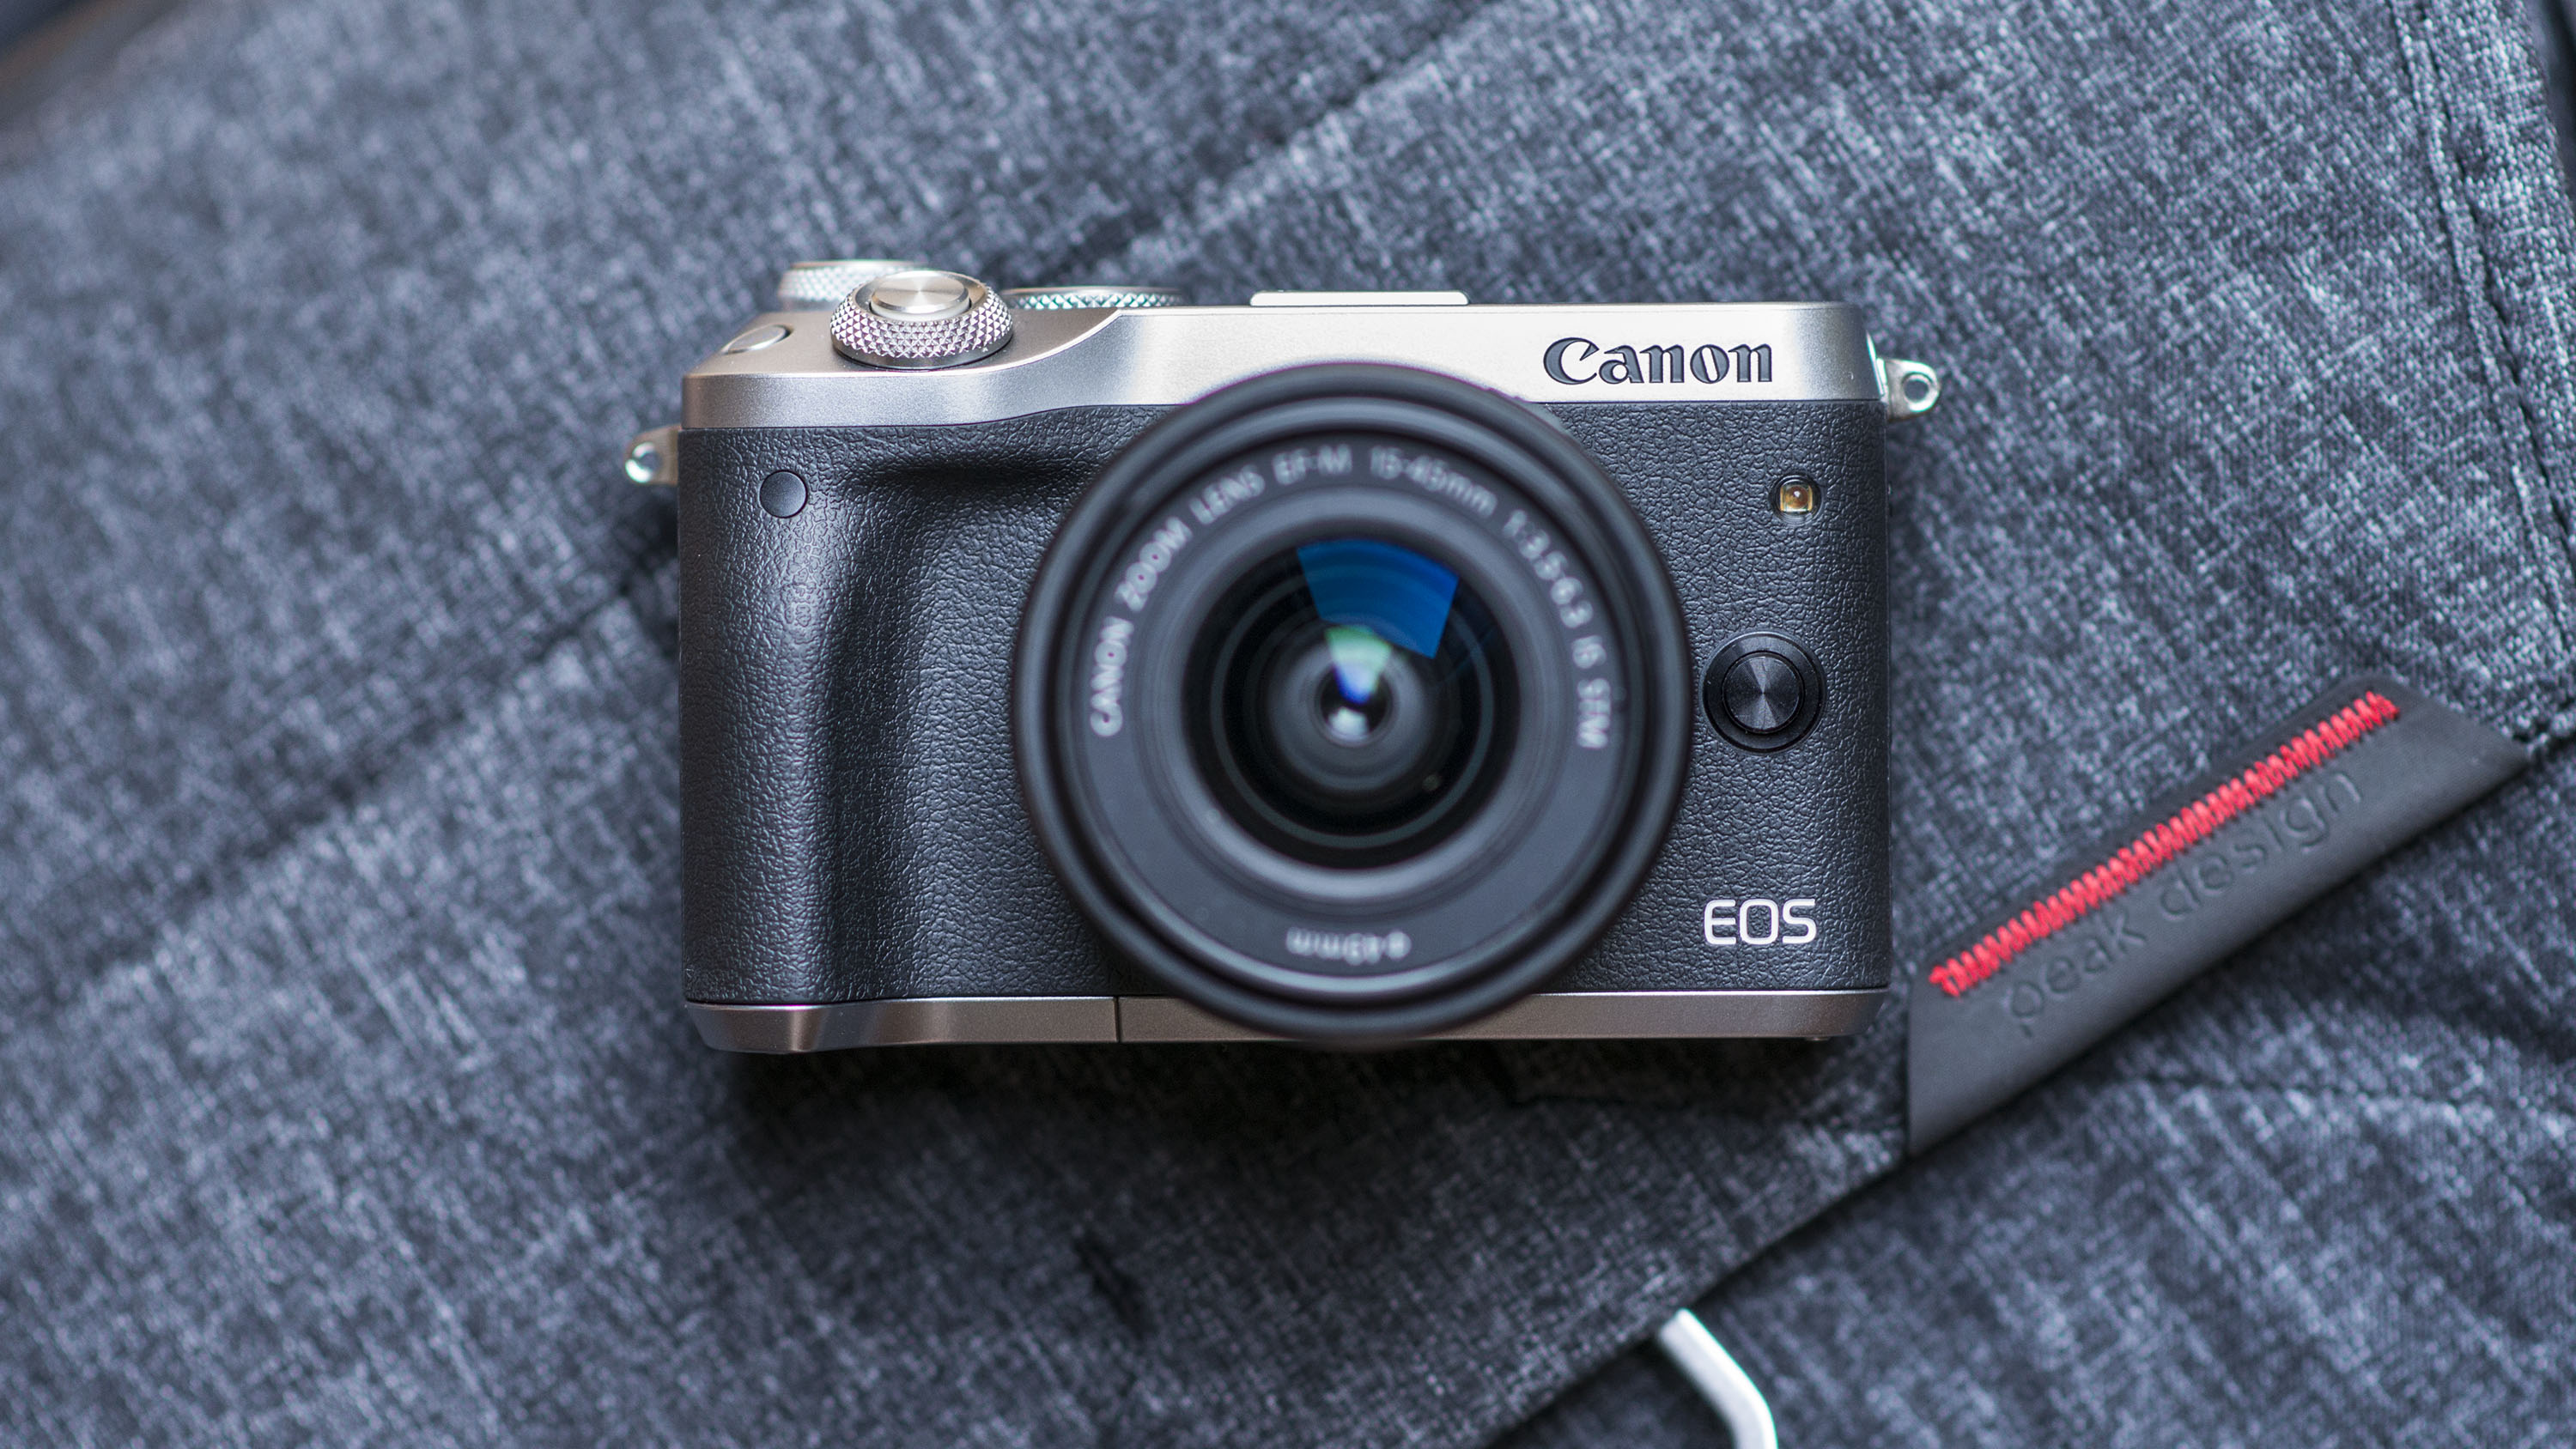 oz4BvnhWe4VoqgaUEY85FK - Canon EOS M6 Mark II gets its first set of rumored specs